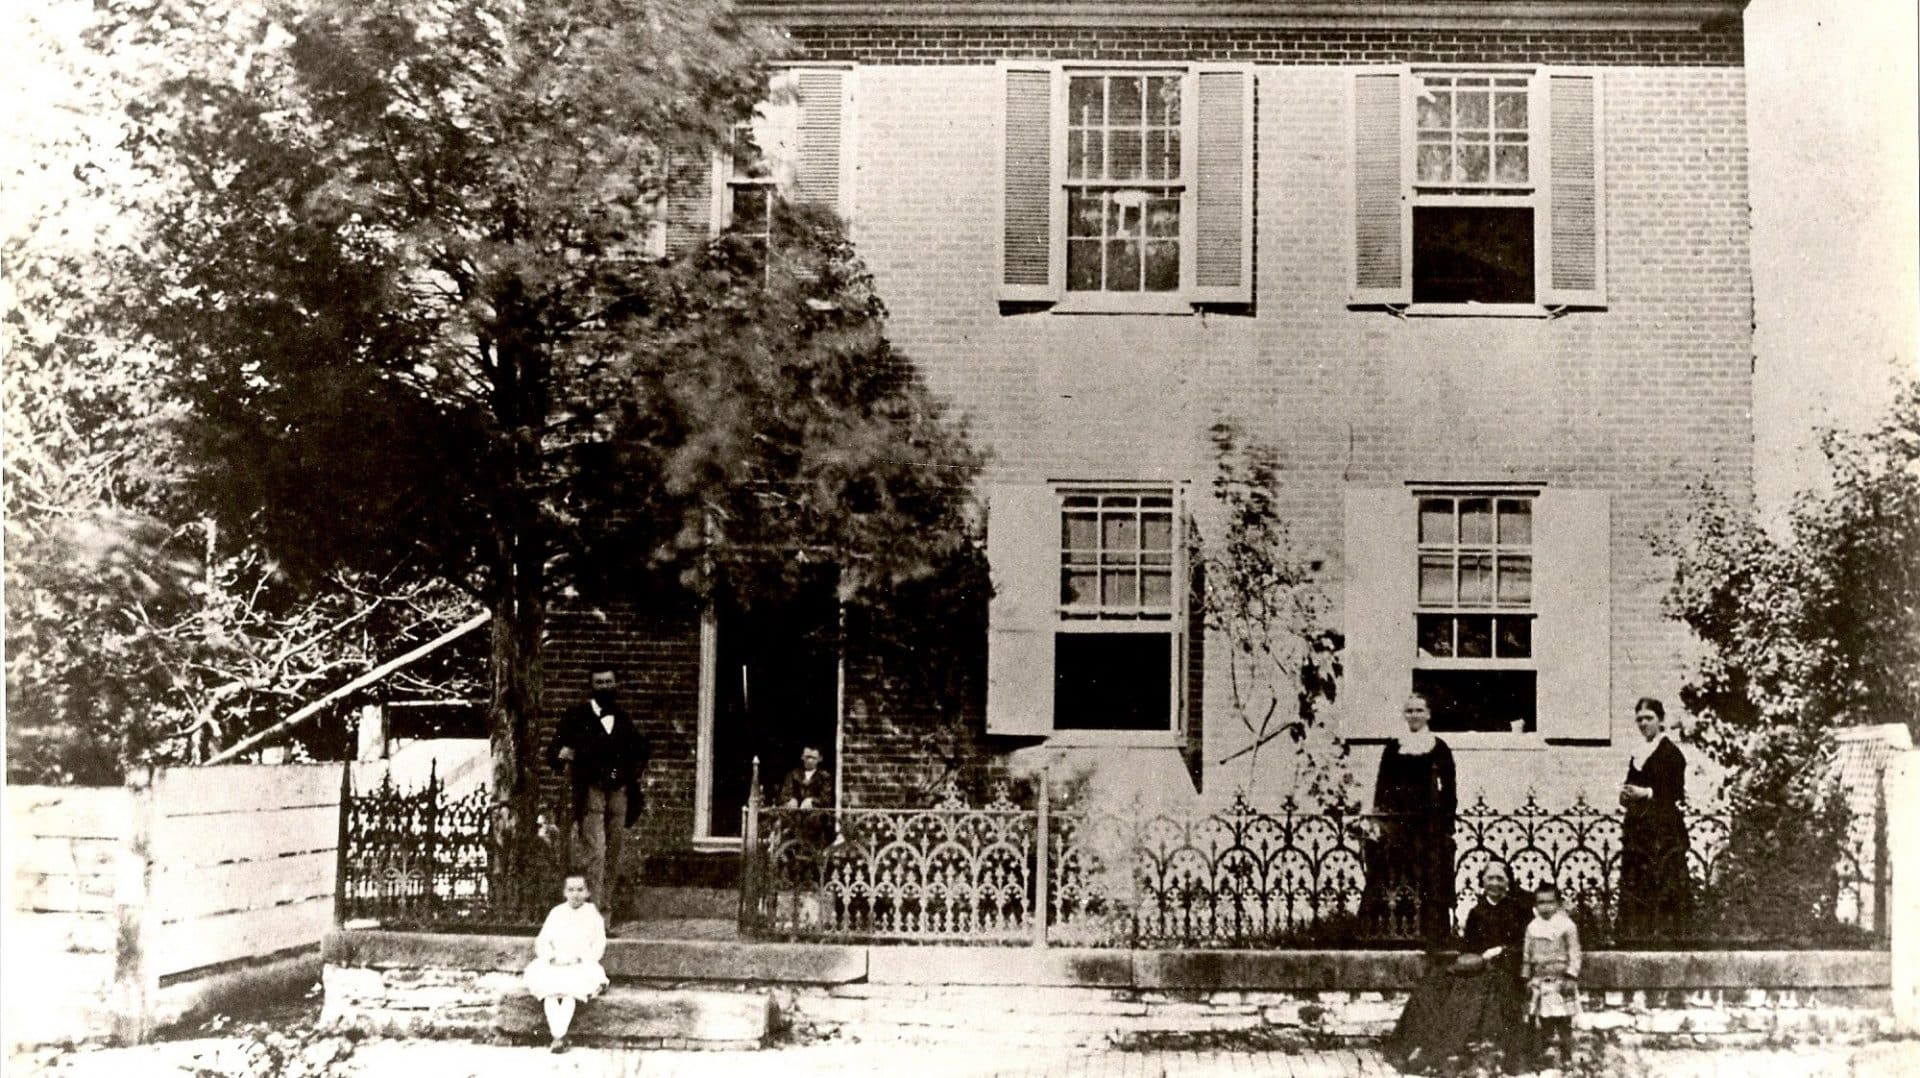 Vintage photograph of the Farnsworth House with the original family outside